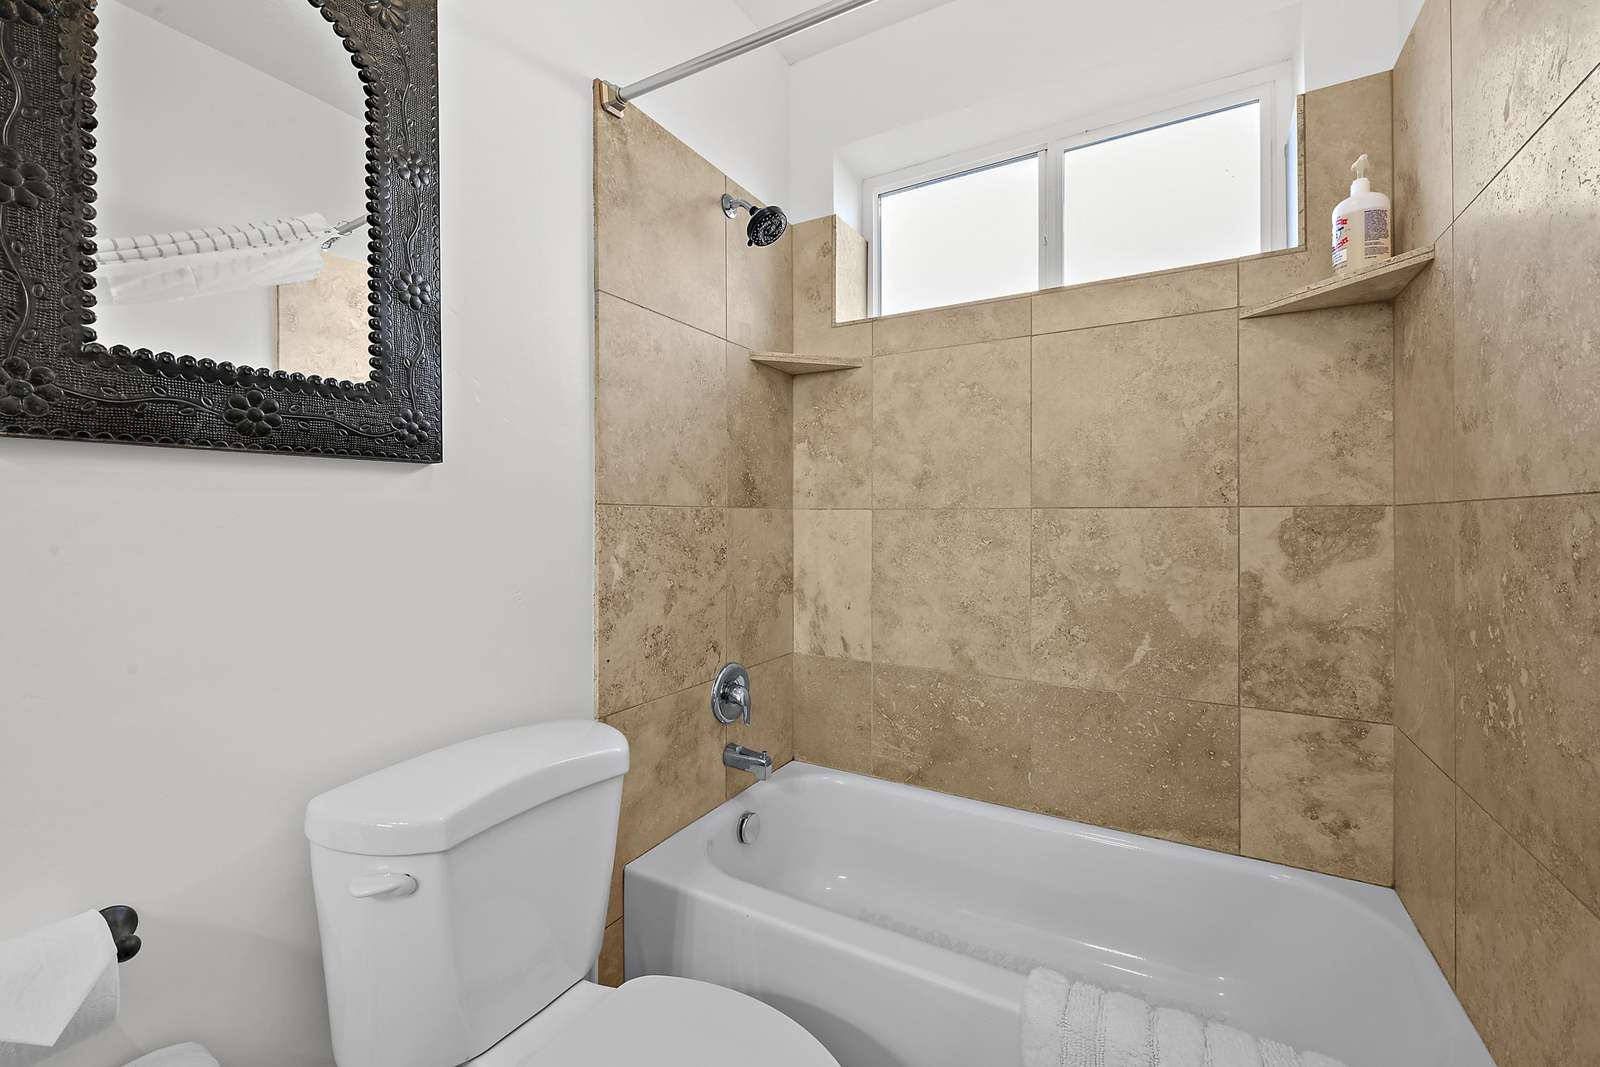 Shared Jack and Jill bathroom with shower/tub